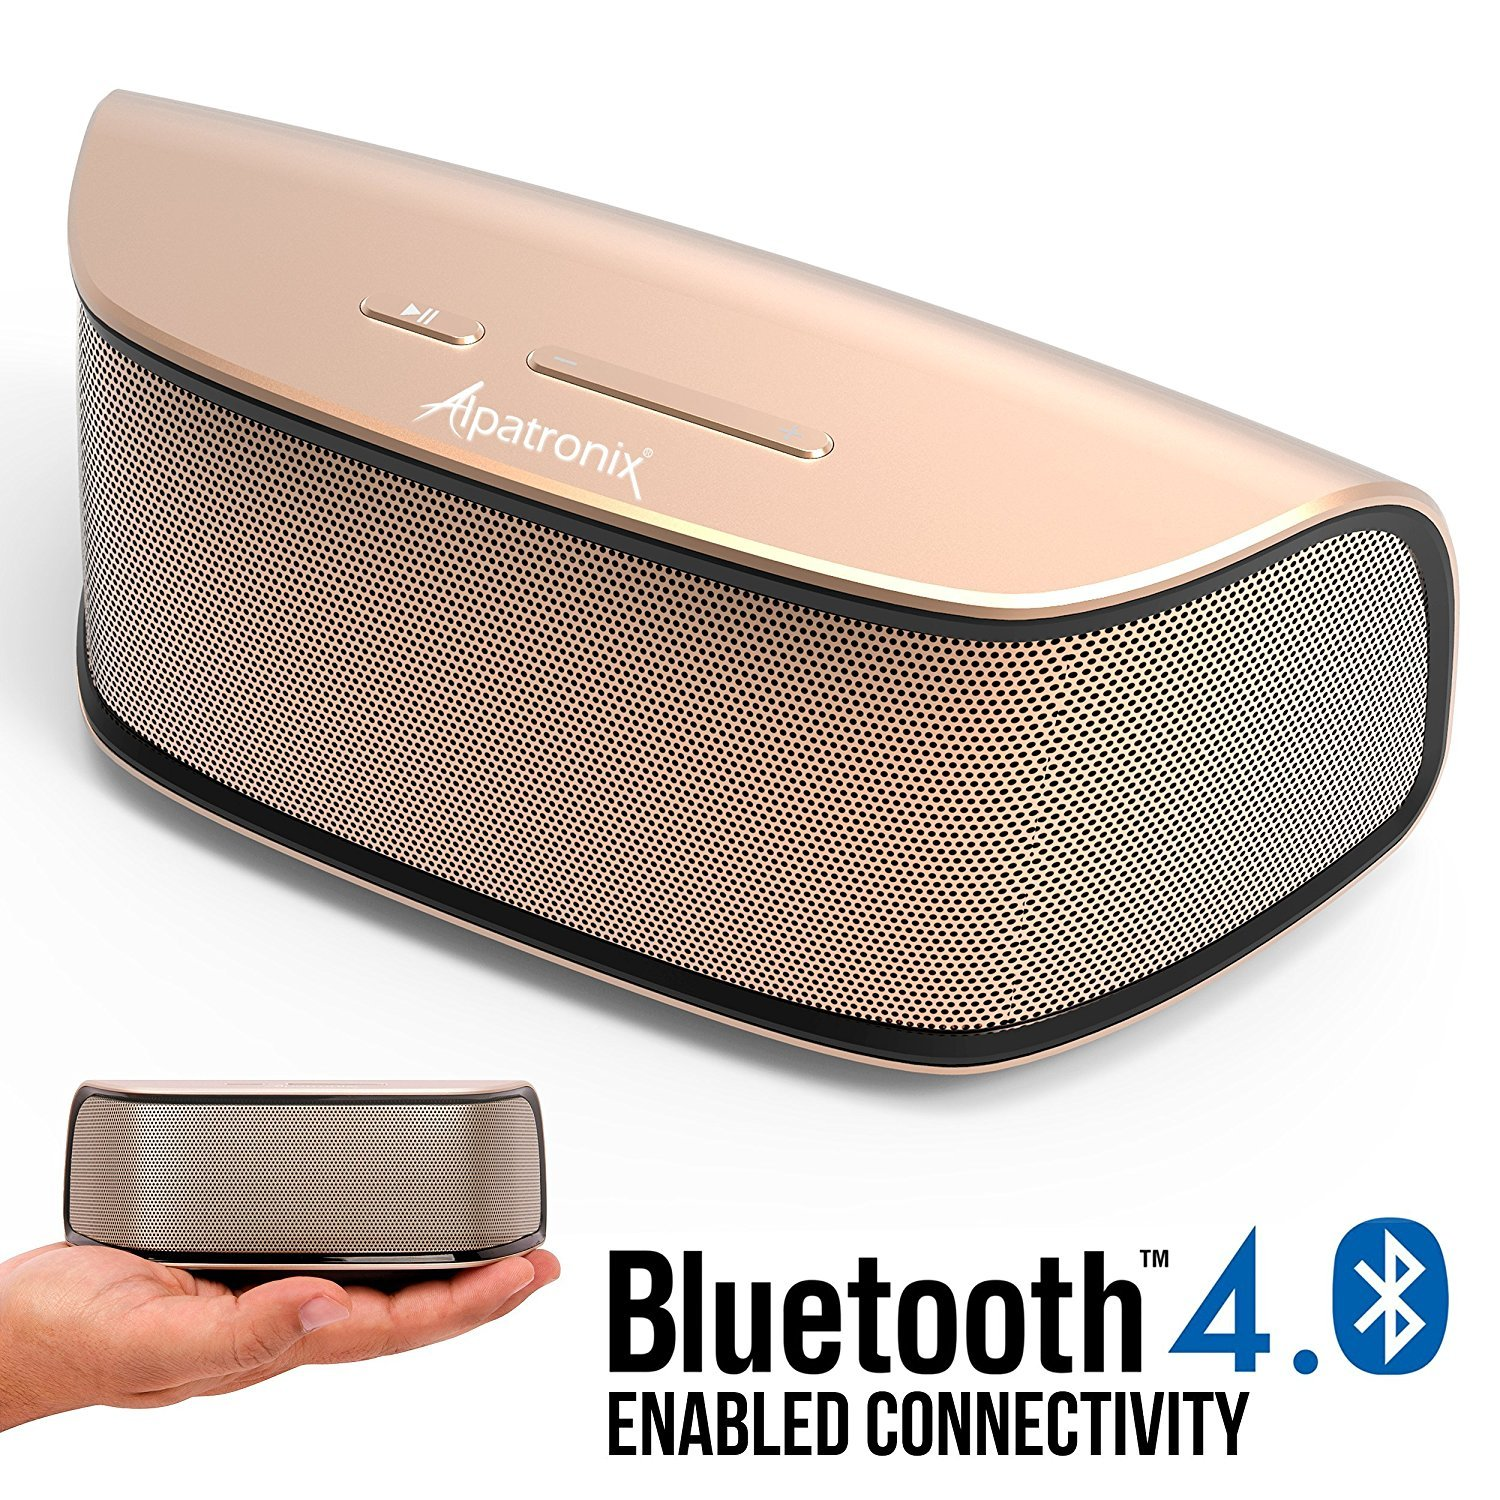 Bluetooth Speakers, Alpatronix AX420 Universal HD 10W Portable Rechargeable Wireless Stereo Bluetooth Speaker w/Mic, Subwoofer, Volume/Playback Controls for Smartphones, Tablets & Computers - Gold